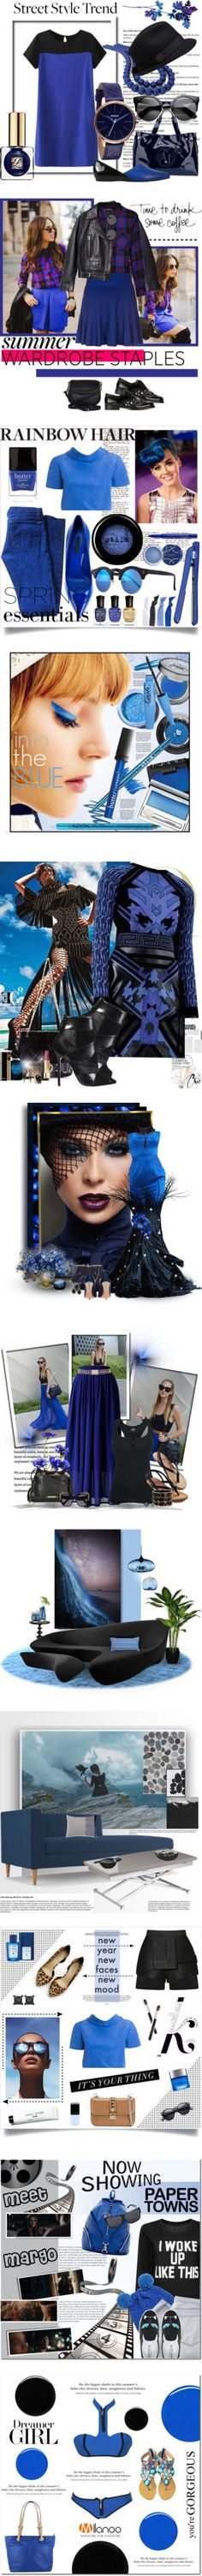 """""""Blue and Black Color Trend"""" by yours-styling-best-friend ❤ liked on Polyvore"""